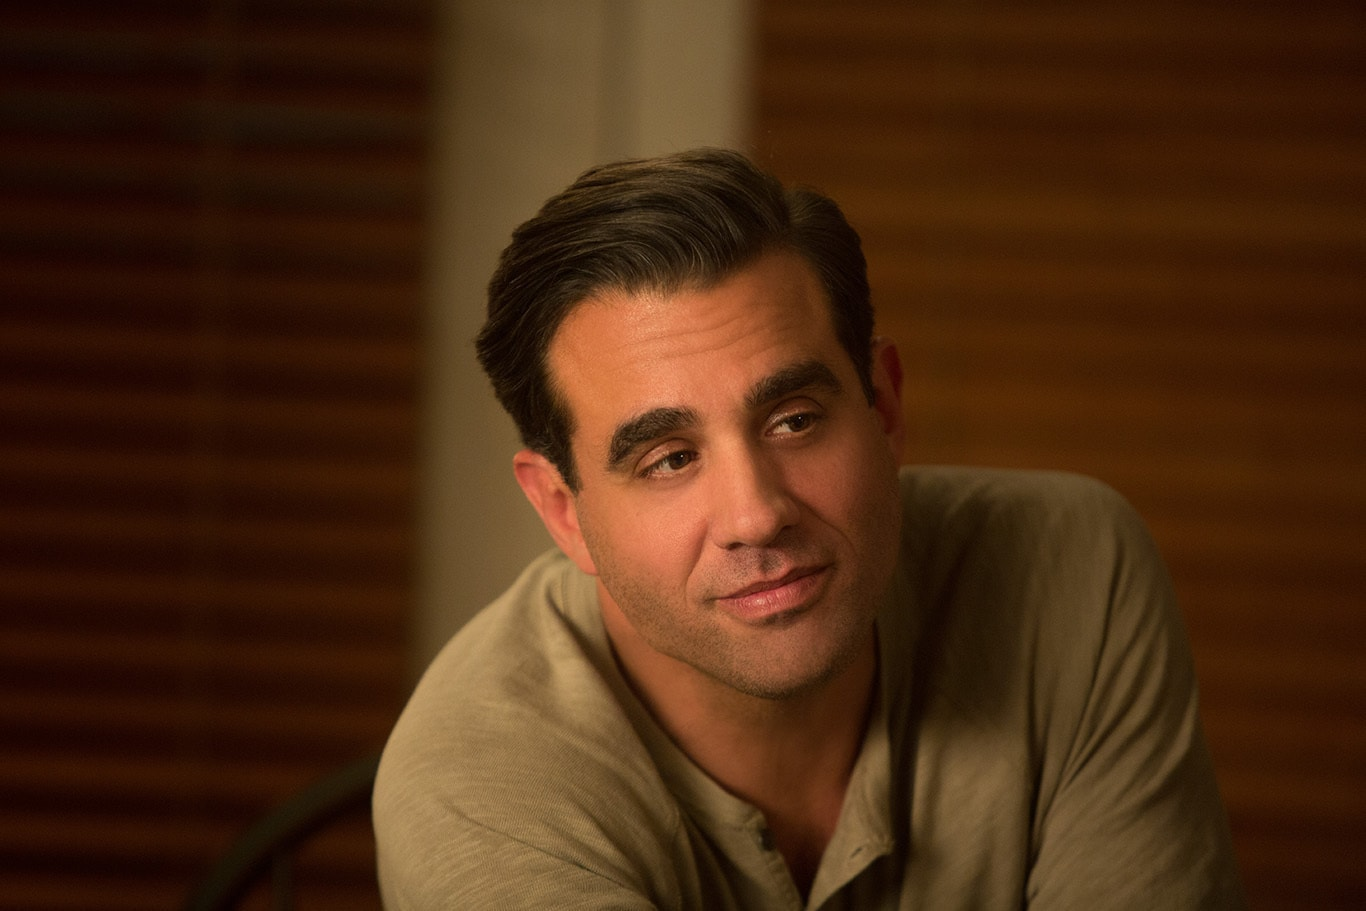 Bobby Cannavale (as Paxton) in the movie Ant-Man